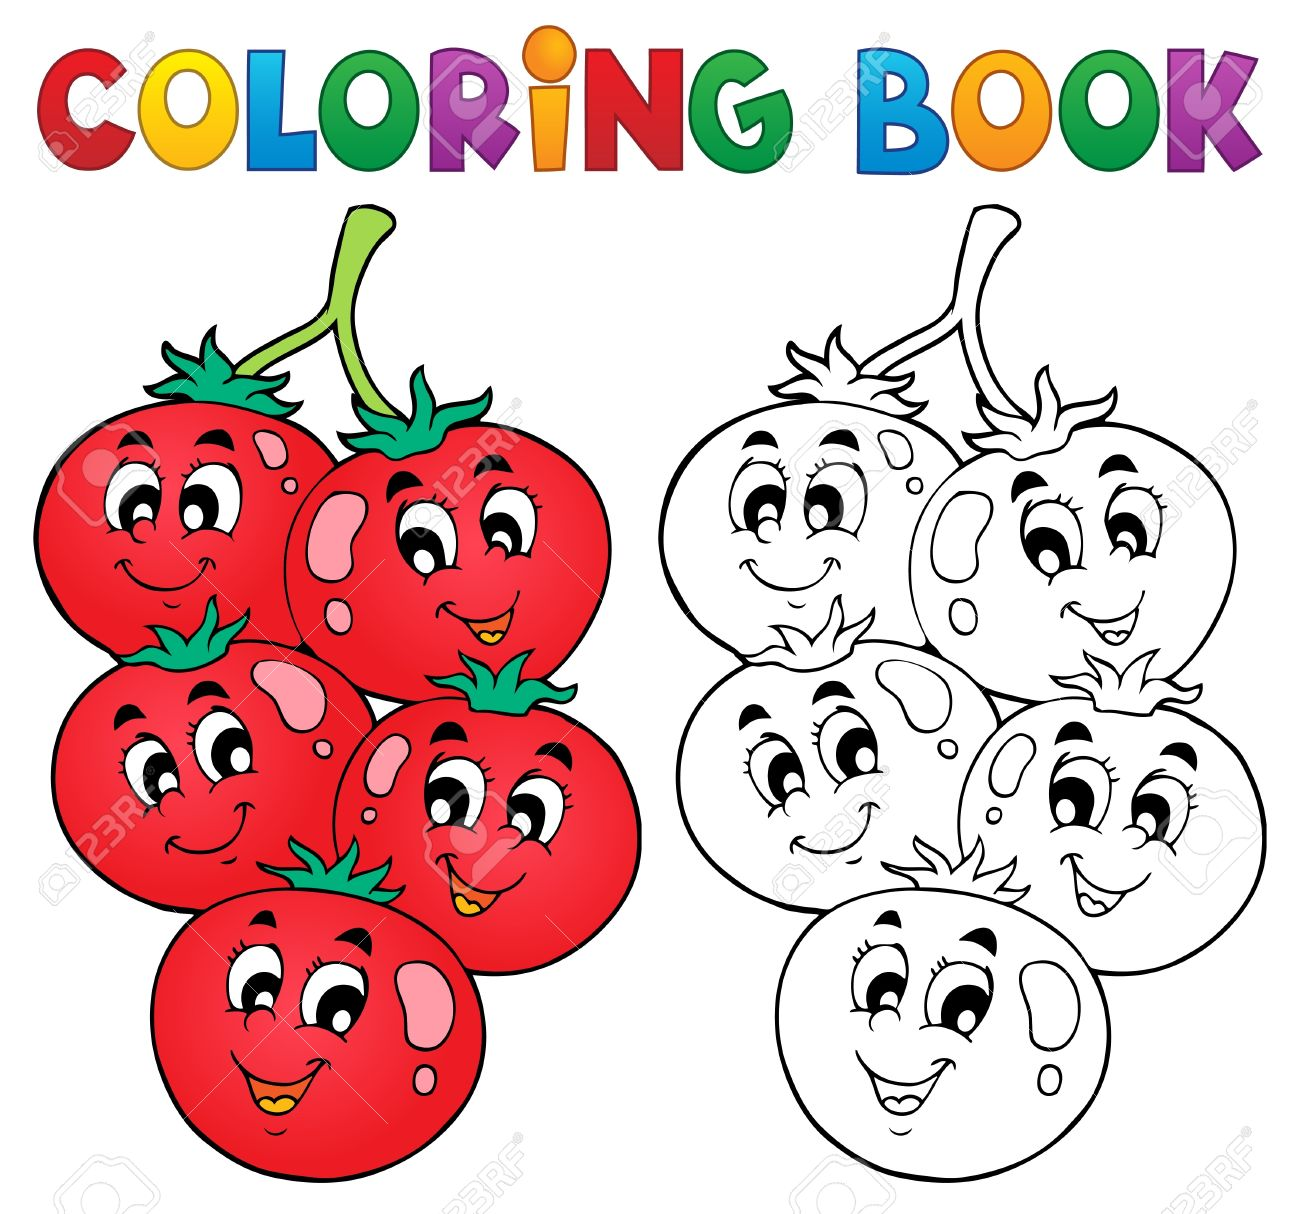 Coloring Book Vegetable Theme Royalty Free Cliparts, Vectors, And ...